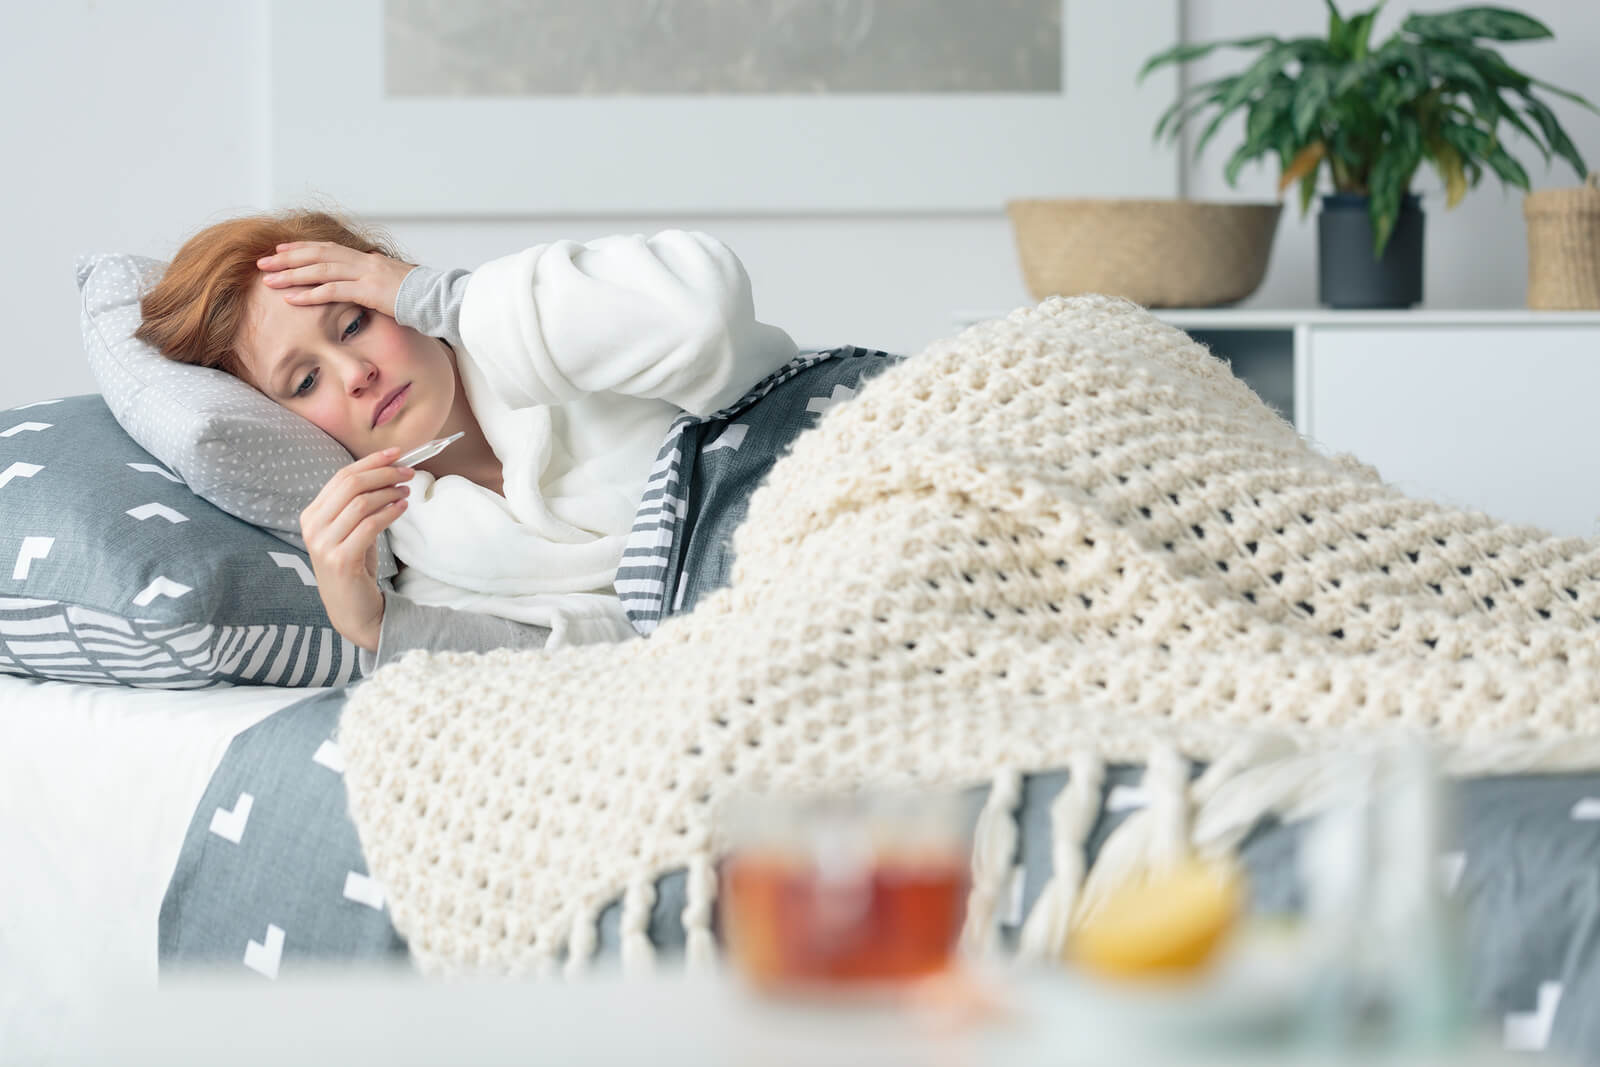 Can You Buy Tamiflu Over the Counter? | PlushCare